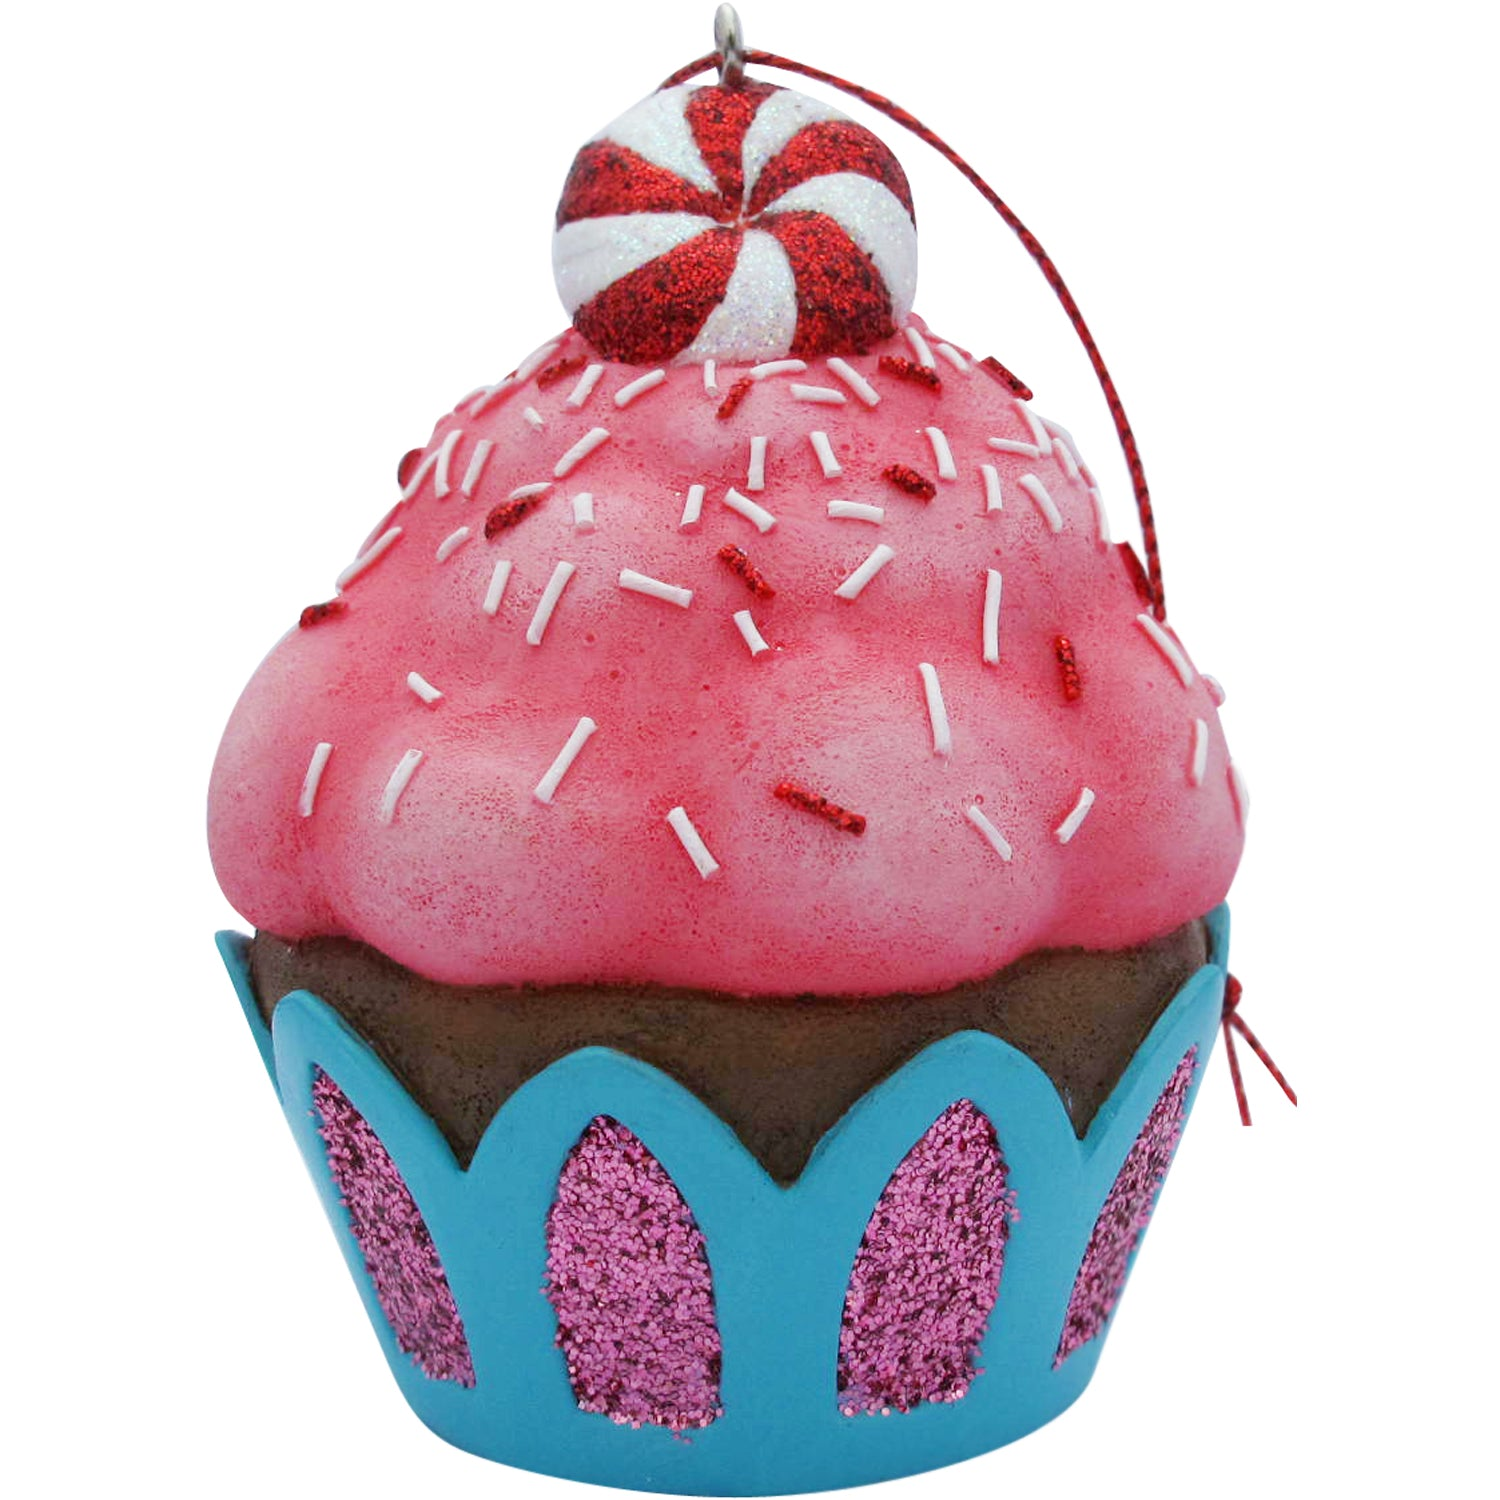 Pink Peppermint Top Cupcake Christmas Tree Ornament